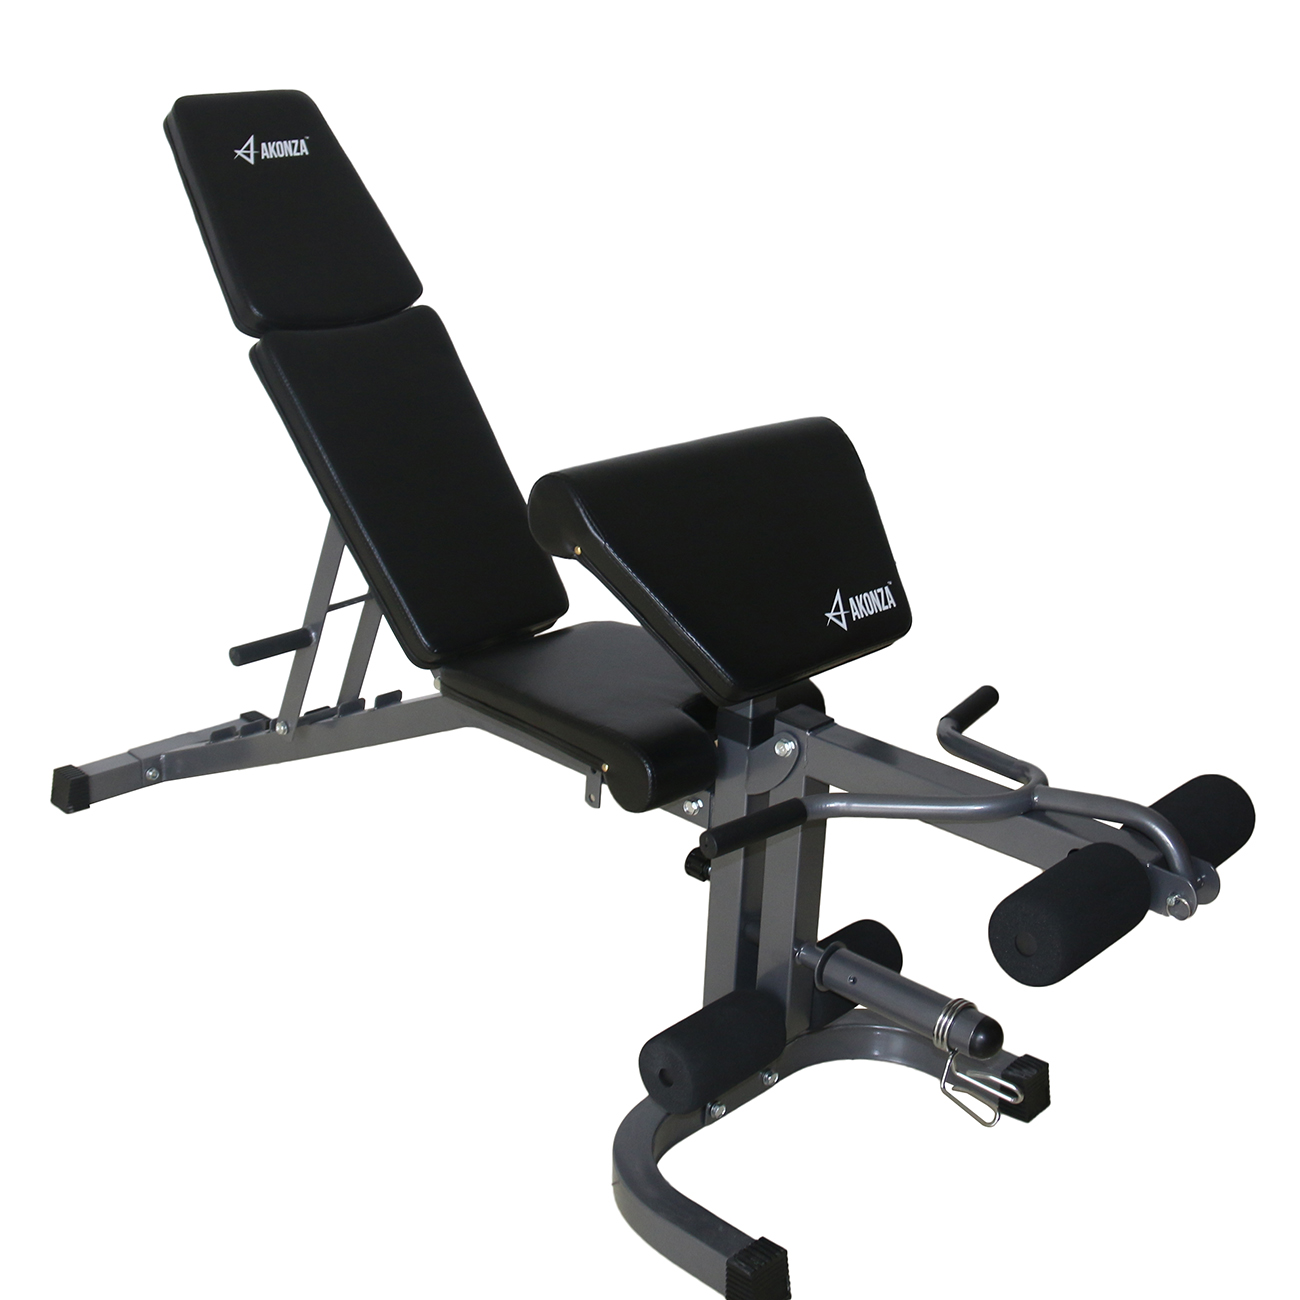 Akonza FID Flat Incline Decline Weight Bench with Leg Extension and Preacher Curl Fitness Equipment Set